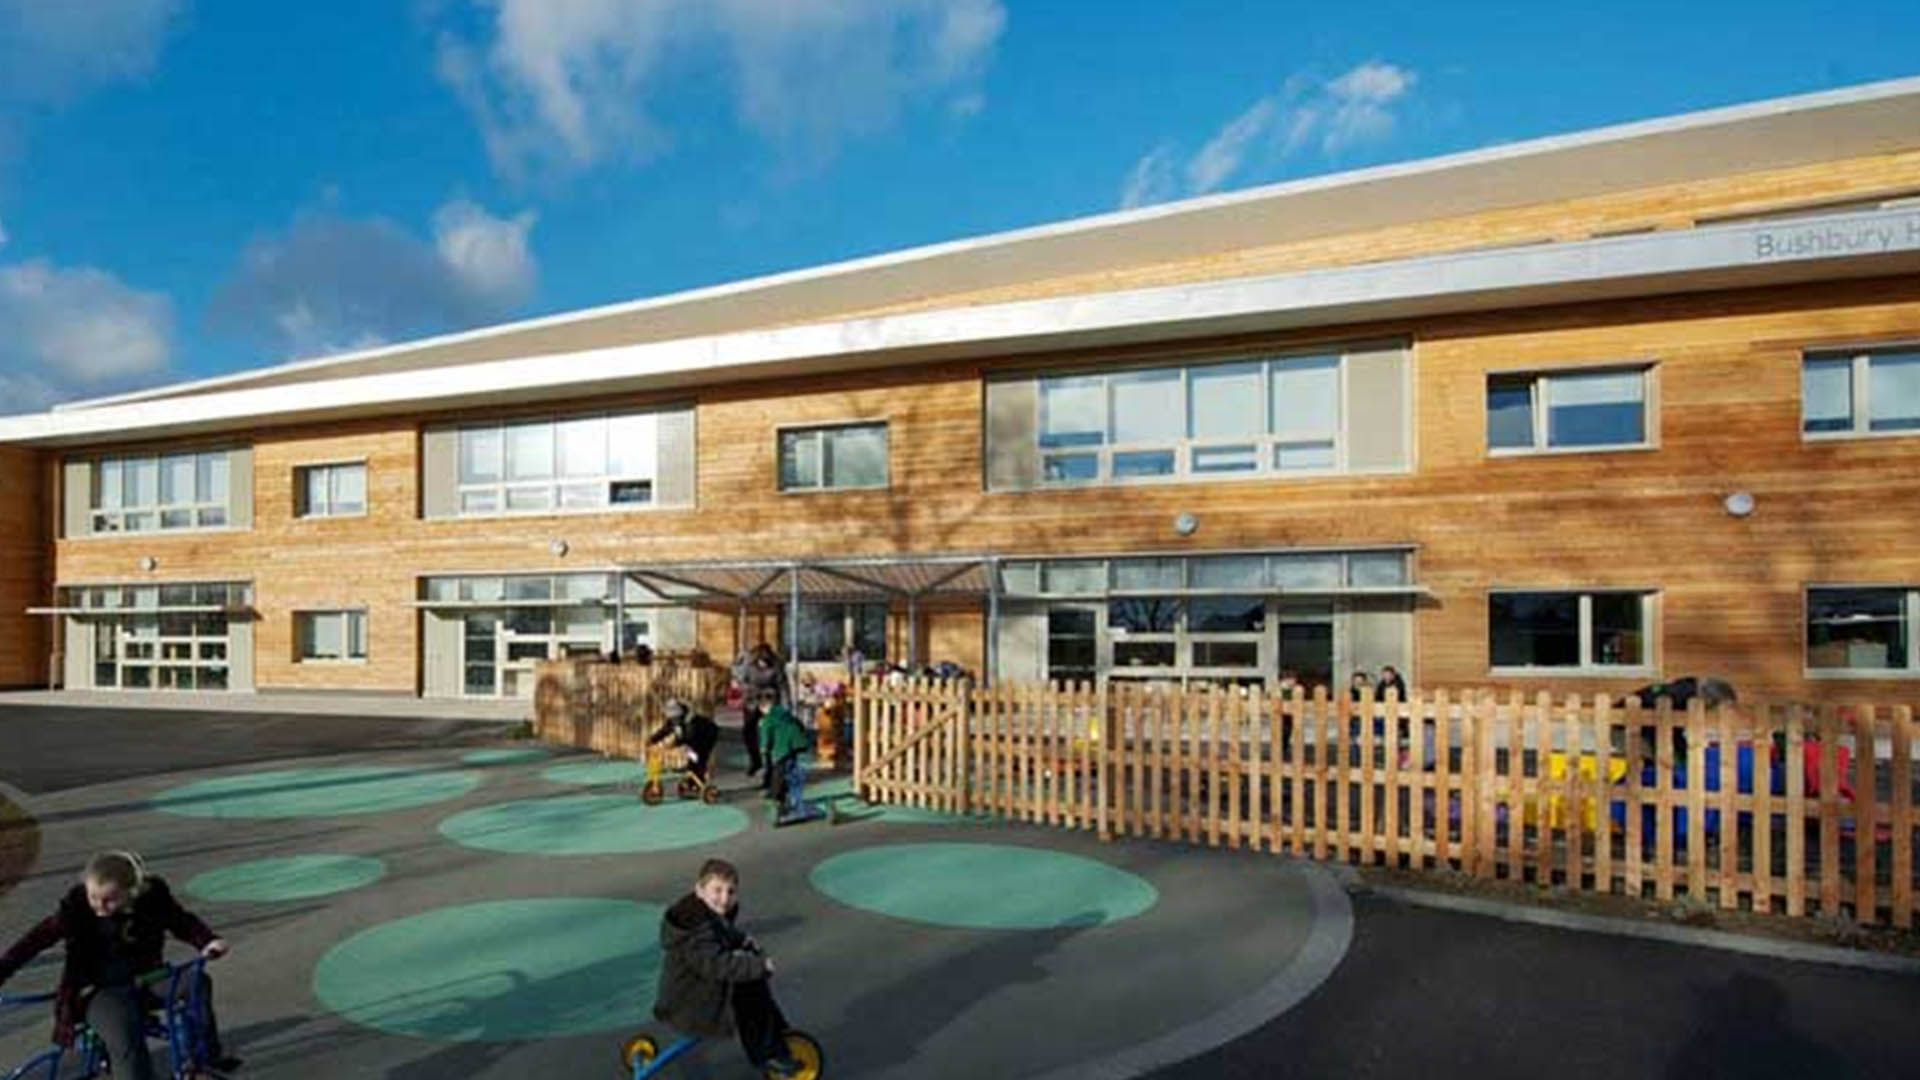 Bushbury School - RIBA Award (Regional) - Sustainability Award (regional) - Wolverhampton Environmental Awards - Commendation 2012Passivhaus Trust - Non domestic - Winner 2012Architect - Architype